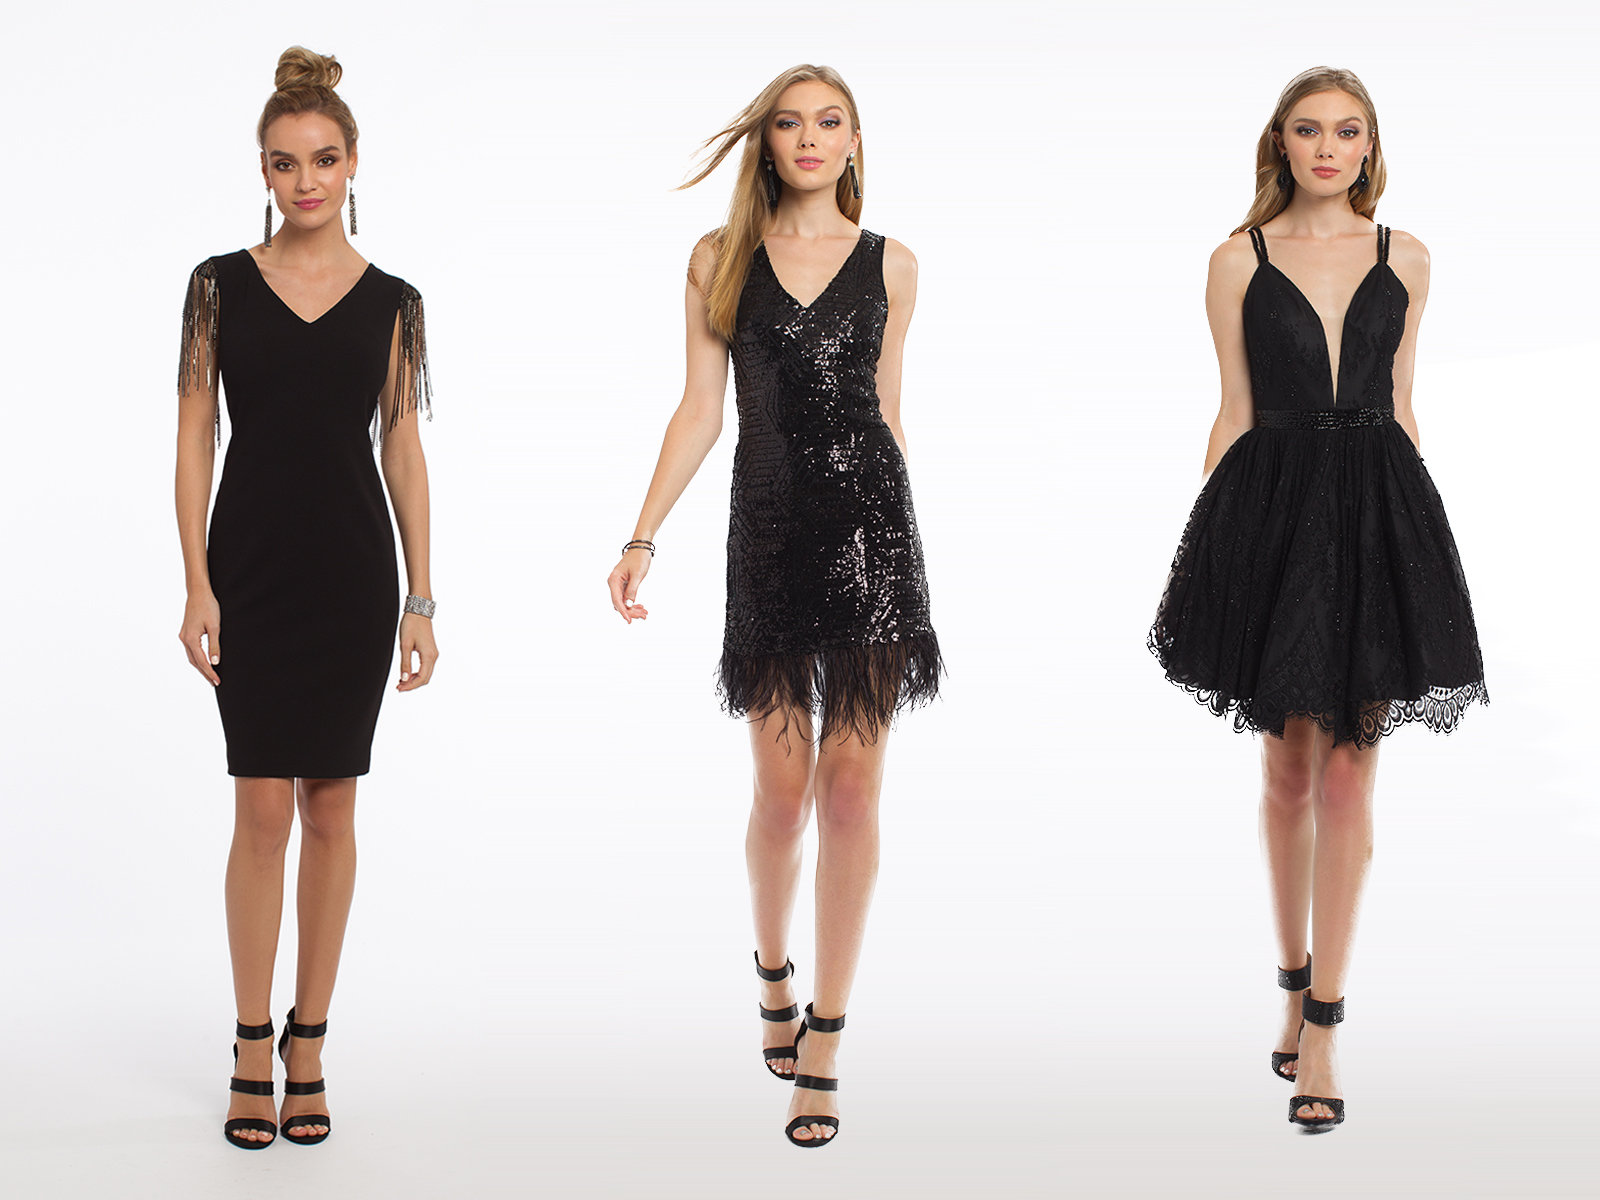 LBD's for Homecoming